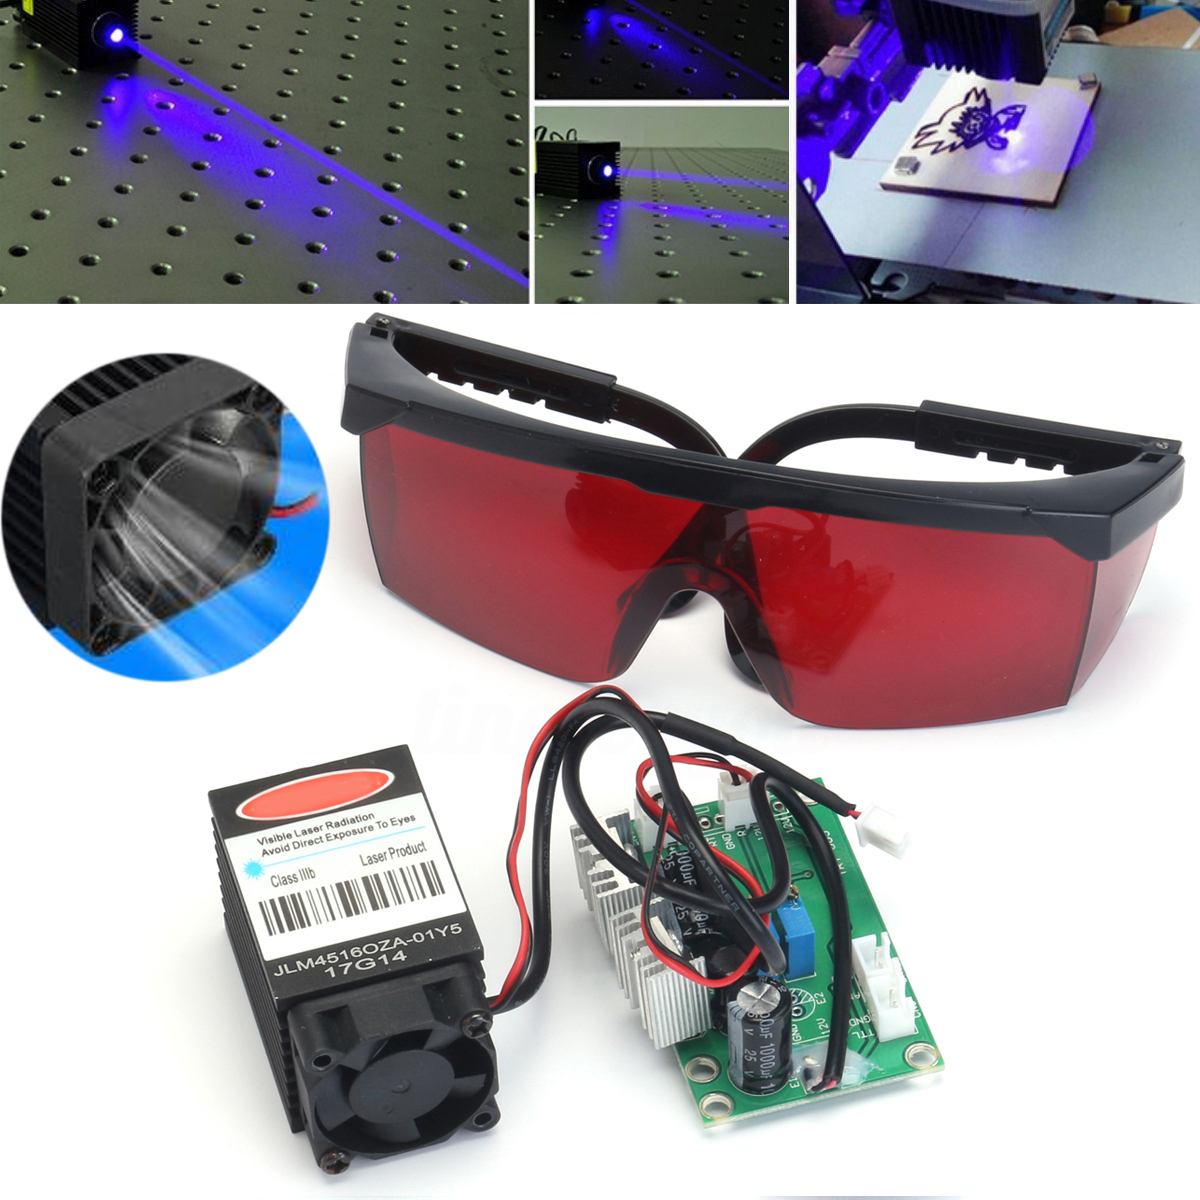 Focusable Blue Laser Diode Dot Module 2000mw Engraver 445nm - 450nm 2W 12V 2A With 405nm Goggles for CNC Laser Cutting Machine 16 50mm 9 0mm laser diode housing w 405nm glass lens